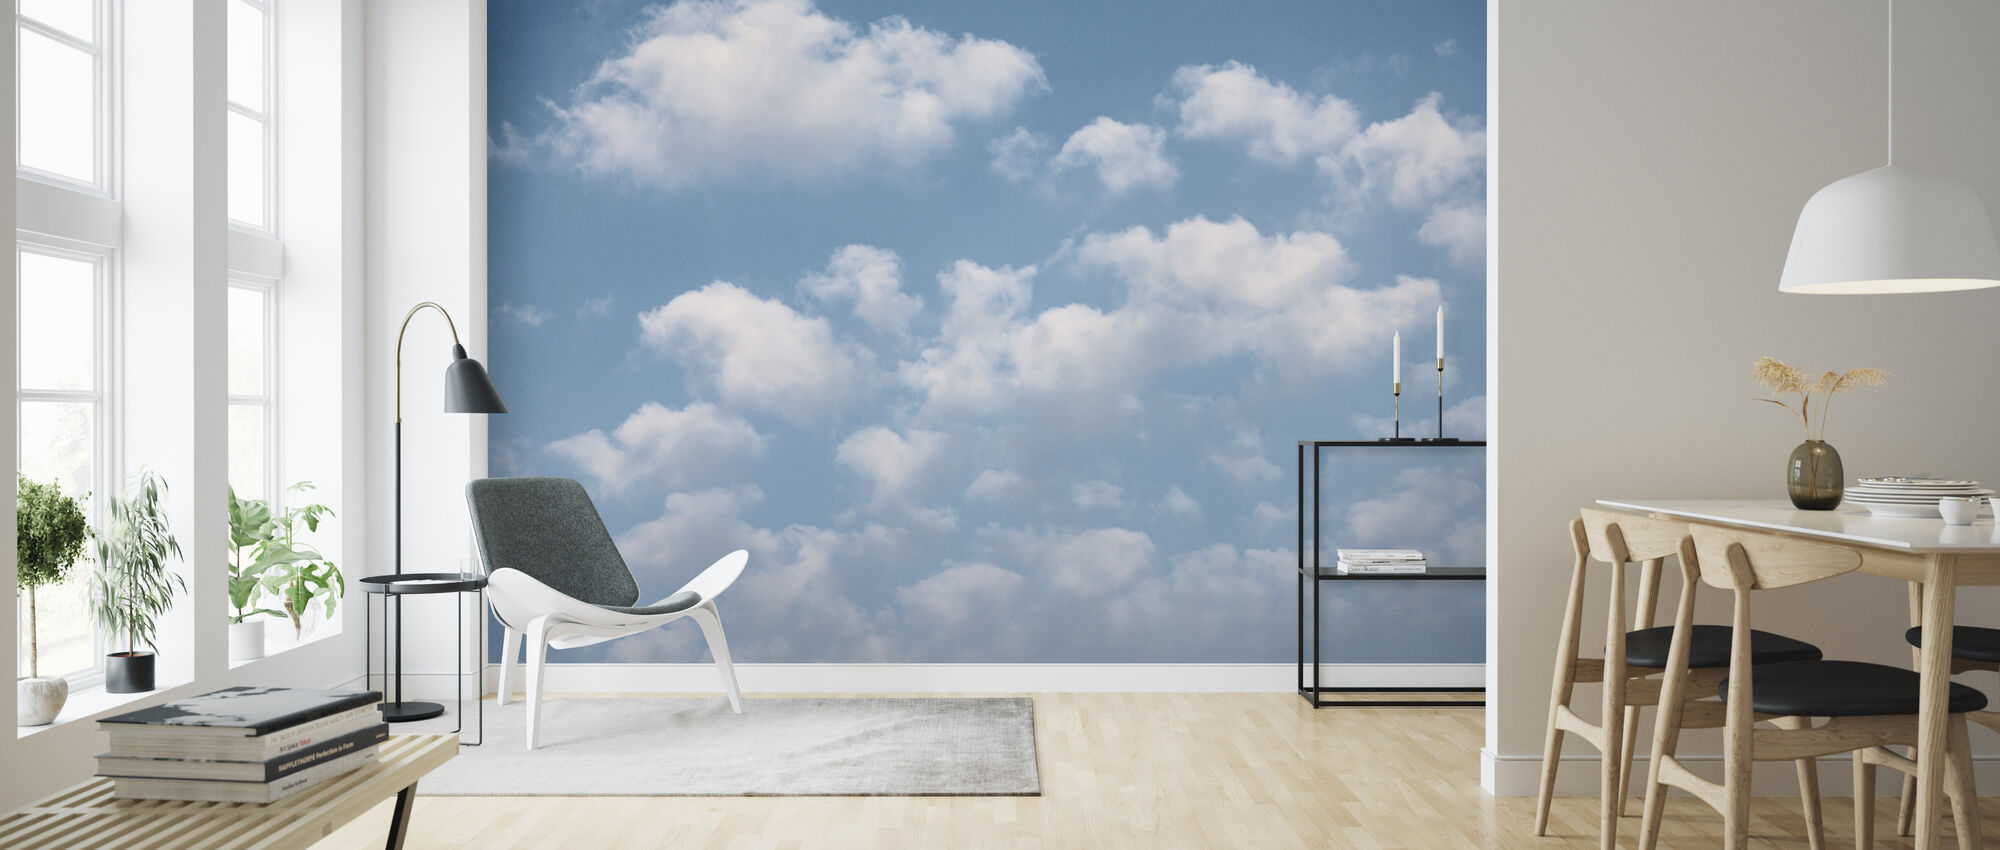 Cloud Sky - Wallpaper - Living Room